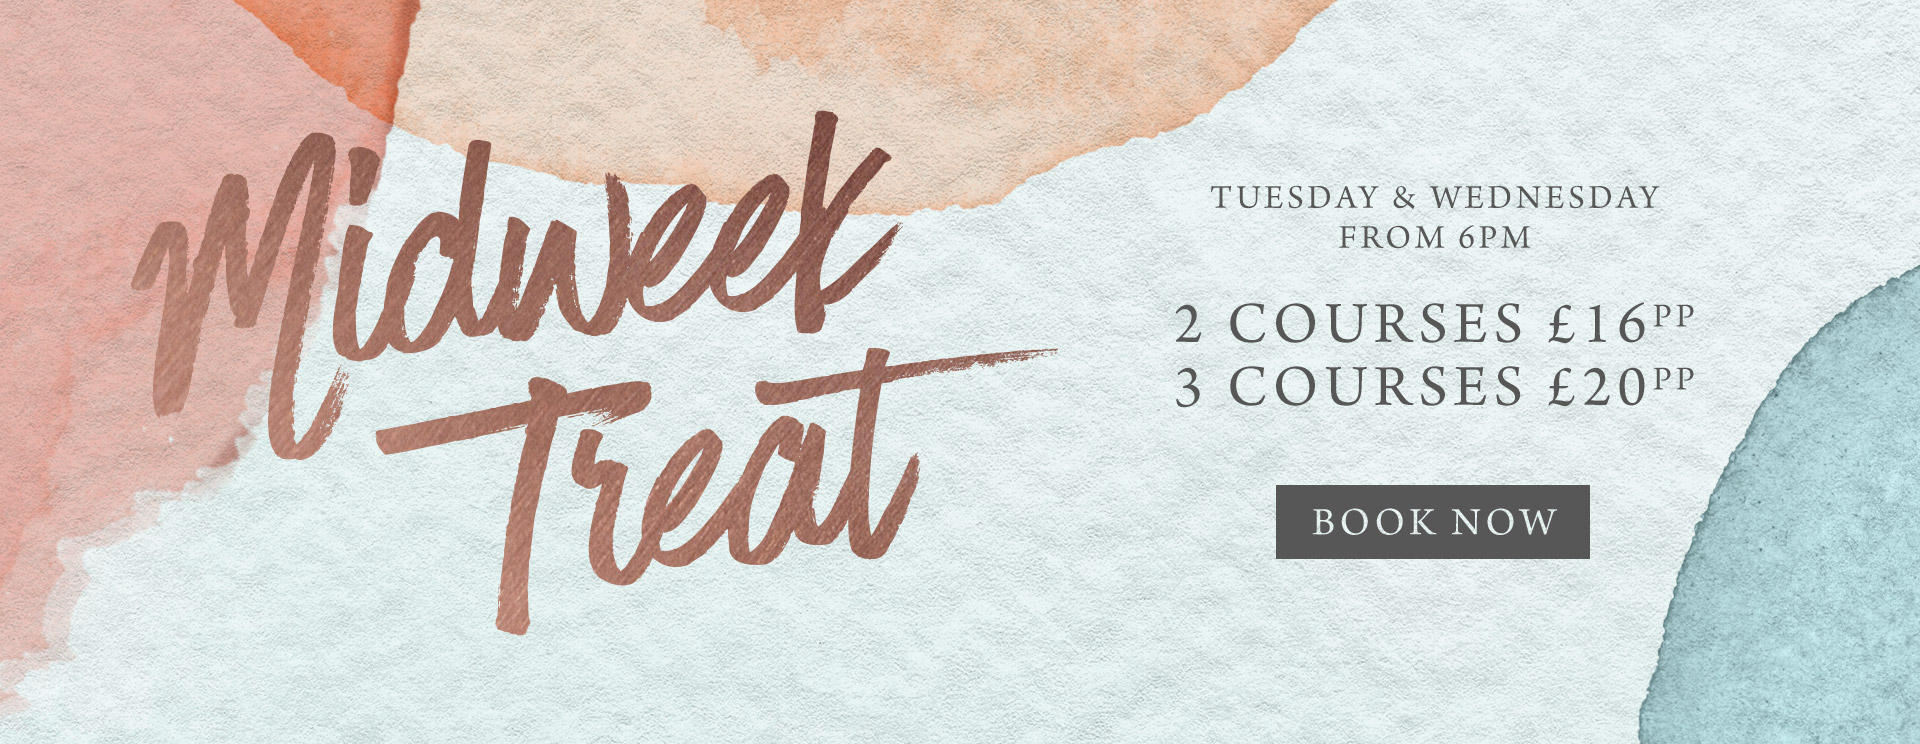 Midweek treat at The Lyttelton Arms - Book now